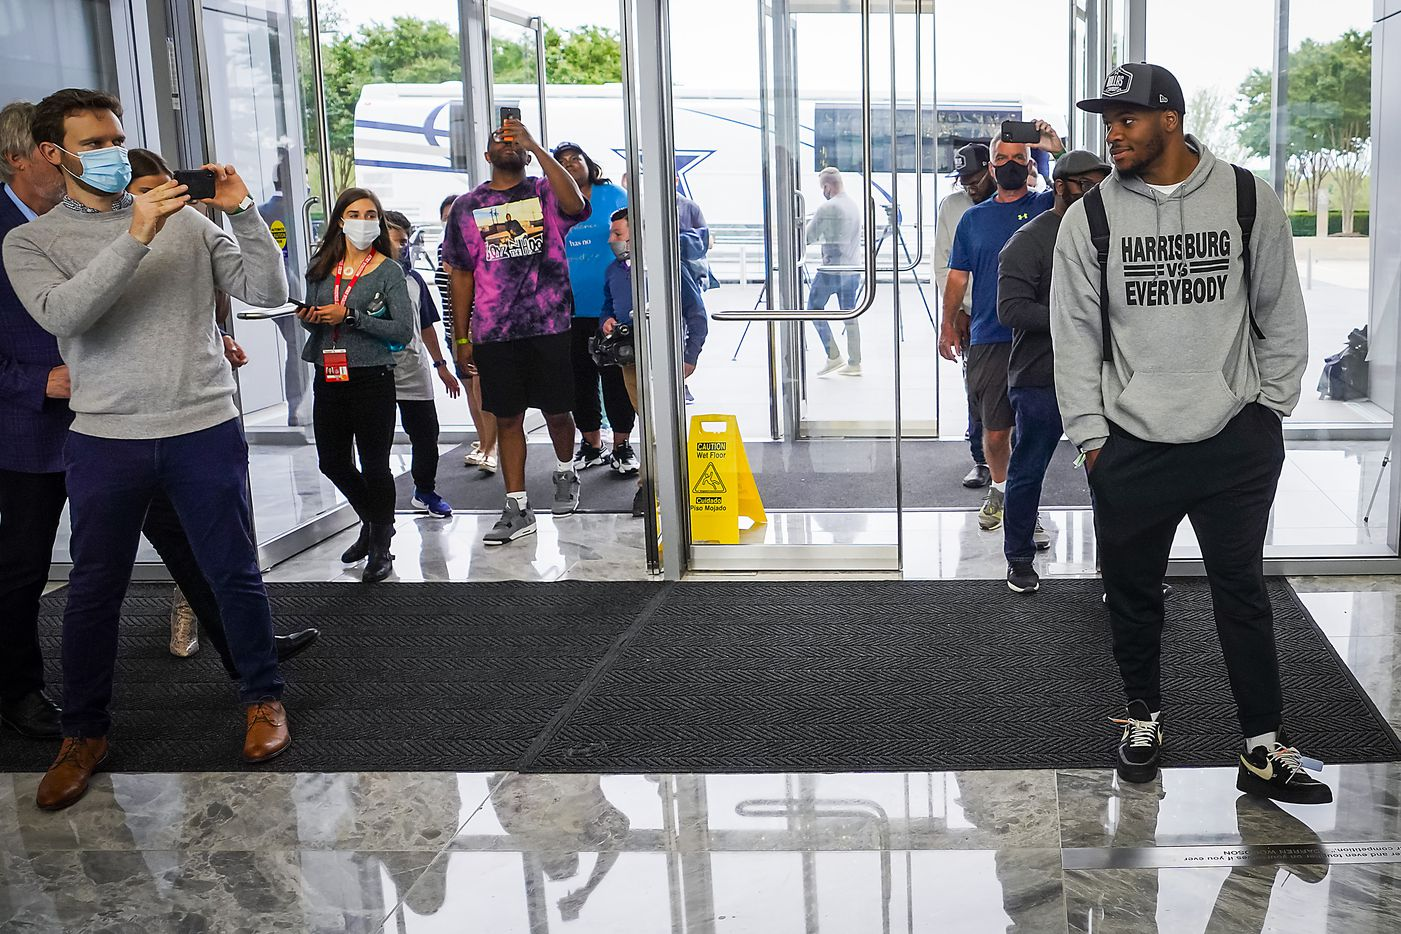 Dallas Cowboys first-round draft pick Micah Parsons, a linebacker from Penn State, arrives with his family at The Star on Friday, April 30, 2021, in Frisco. (Smiley N. Pool/The Dallas Morning News)